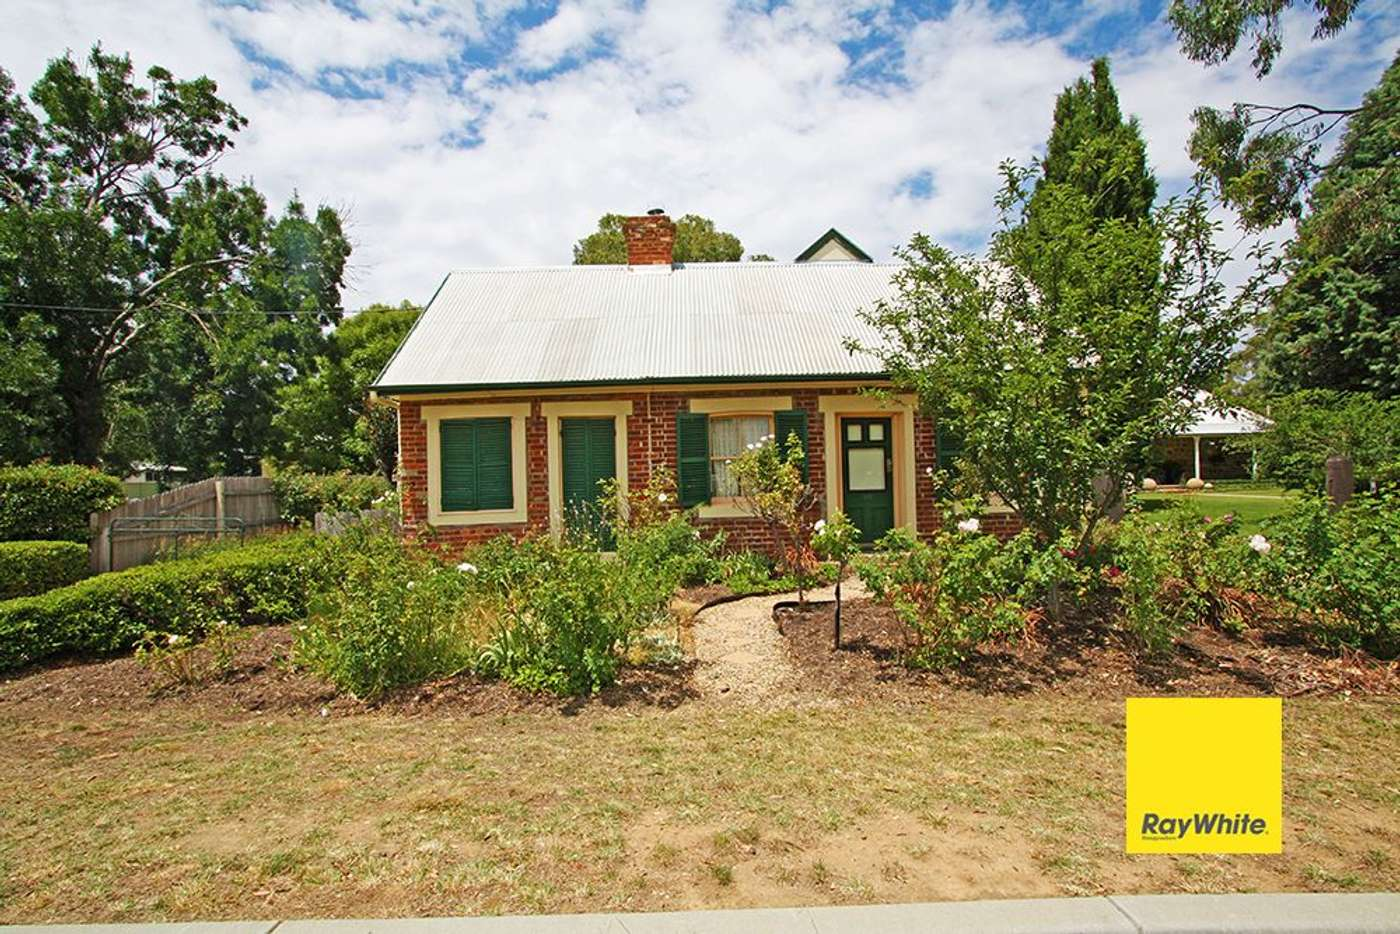 Main view of Homely house listing, 62 Ellendon Street, Bungendore NSW 2621